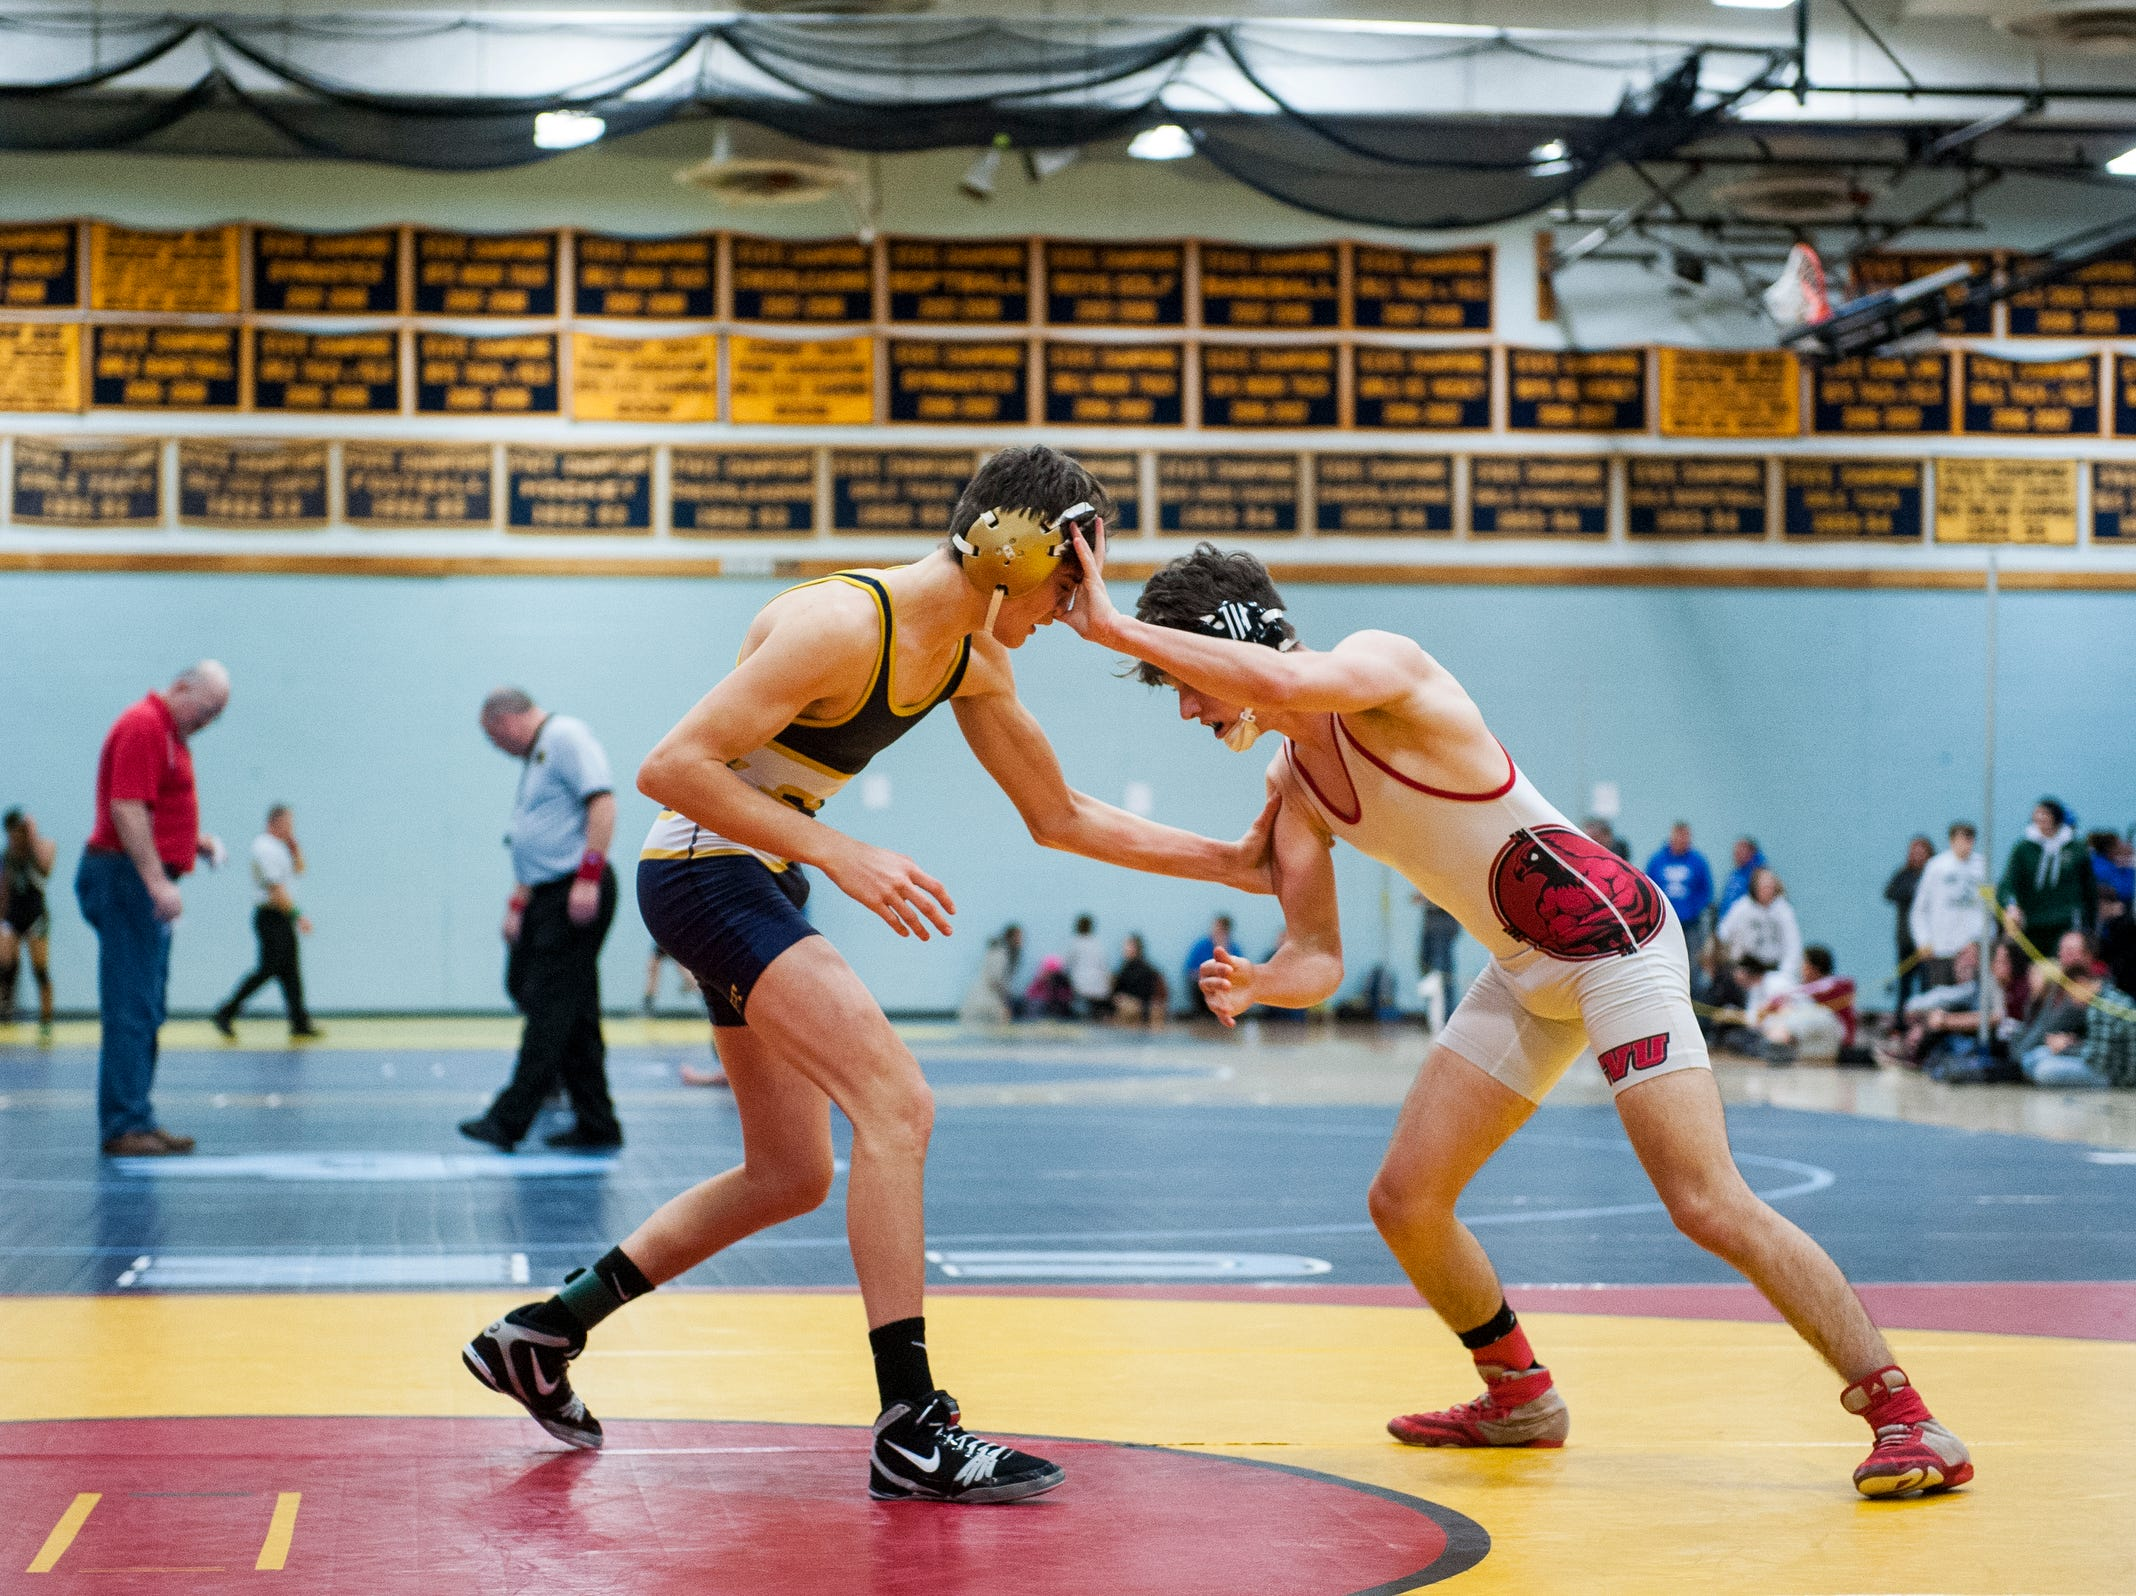 CVU's Lucas Brown wrestles with Essex's Calvin Leo during the Michael J. Baker Essex Classic wrestling tournament at Essex High School on Friday afternoon January 18, 2019 in Essex, Vermont.